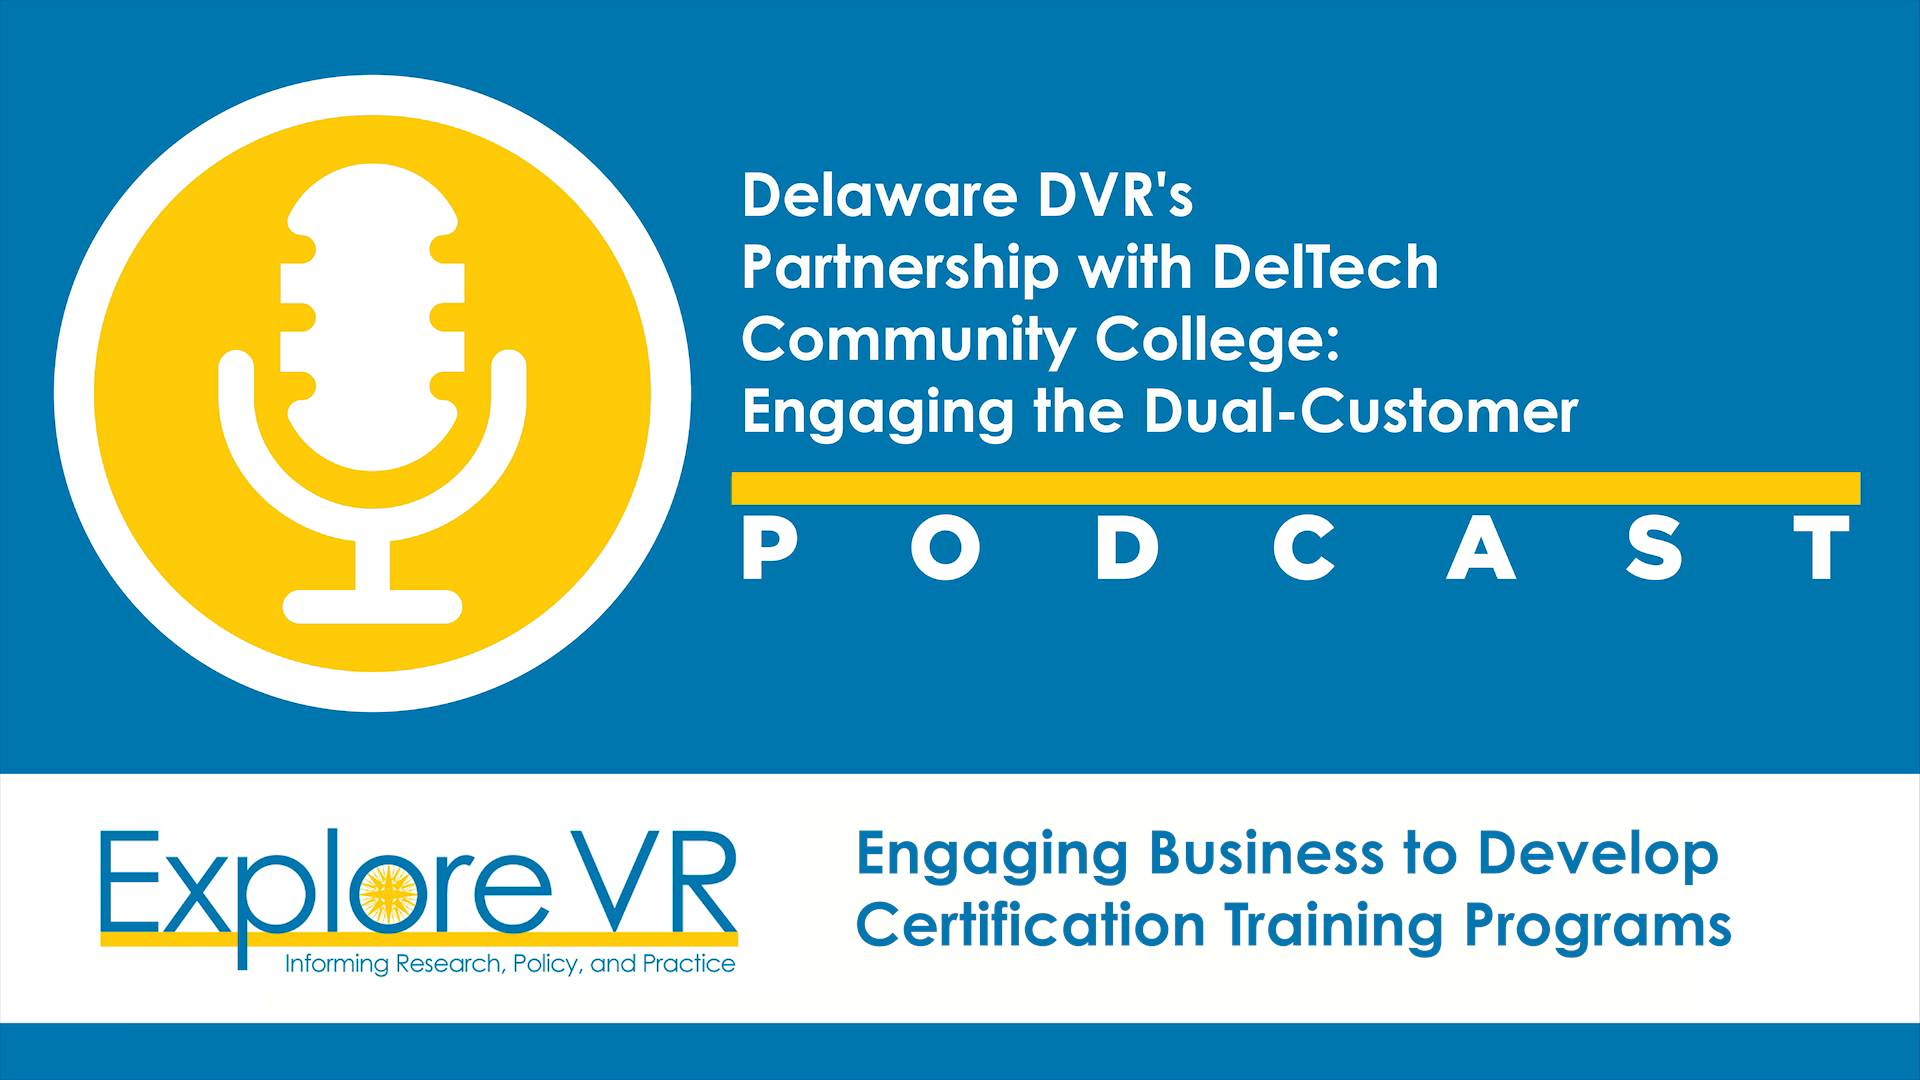 Delaware division of vocational rehabilitation dvr and delaware delaware division of vocational rehabilitation dvr and delaware technical and community college deltech partnership explorevr 1betcityfo Choice Image